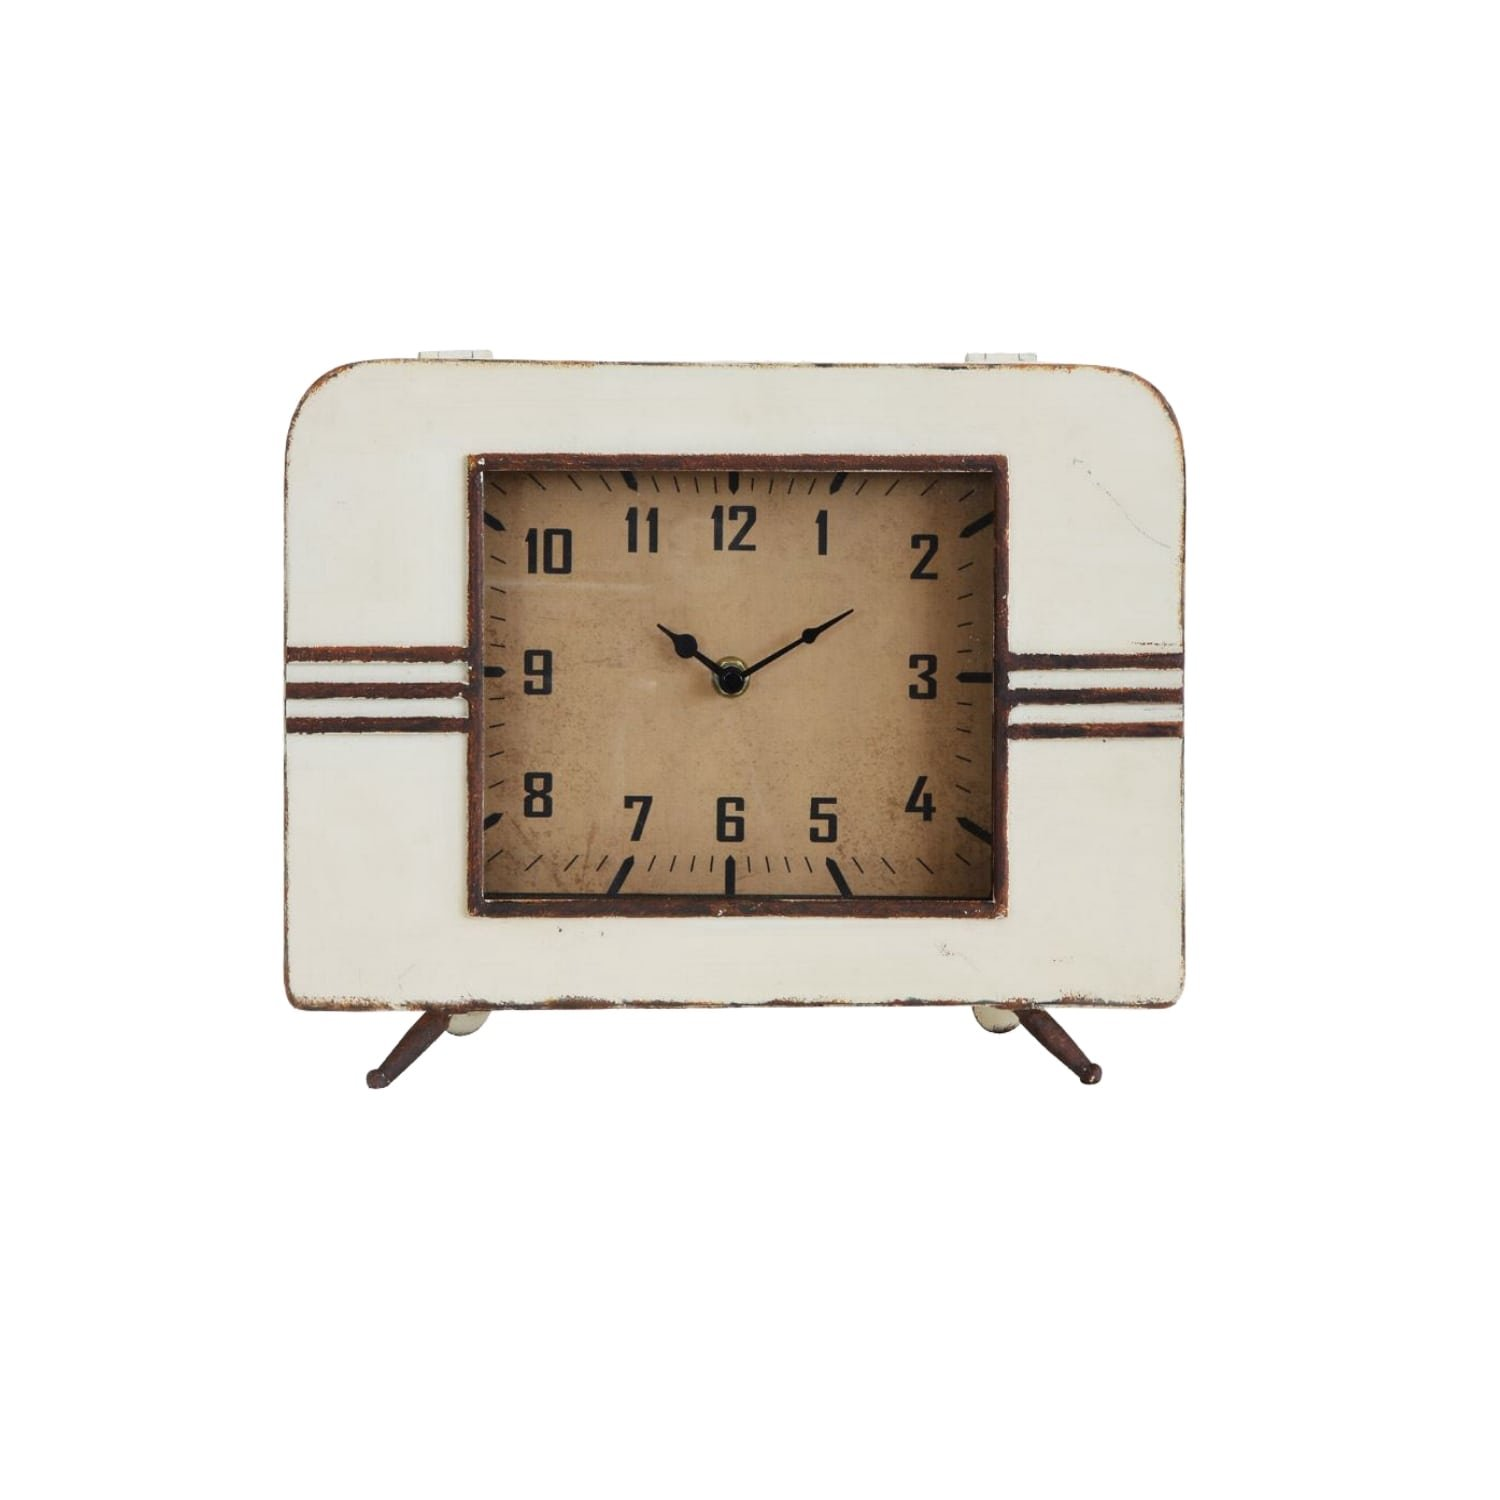 The King's Bay Mid Century Retro Style Metal Mantel Clock Hand Made Accurate Works The King's Bay TKB-CCDA7286-K